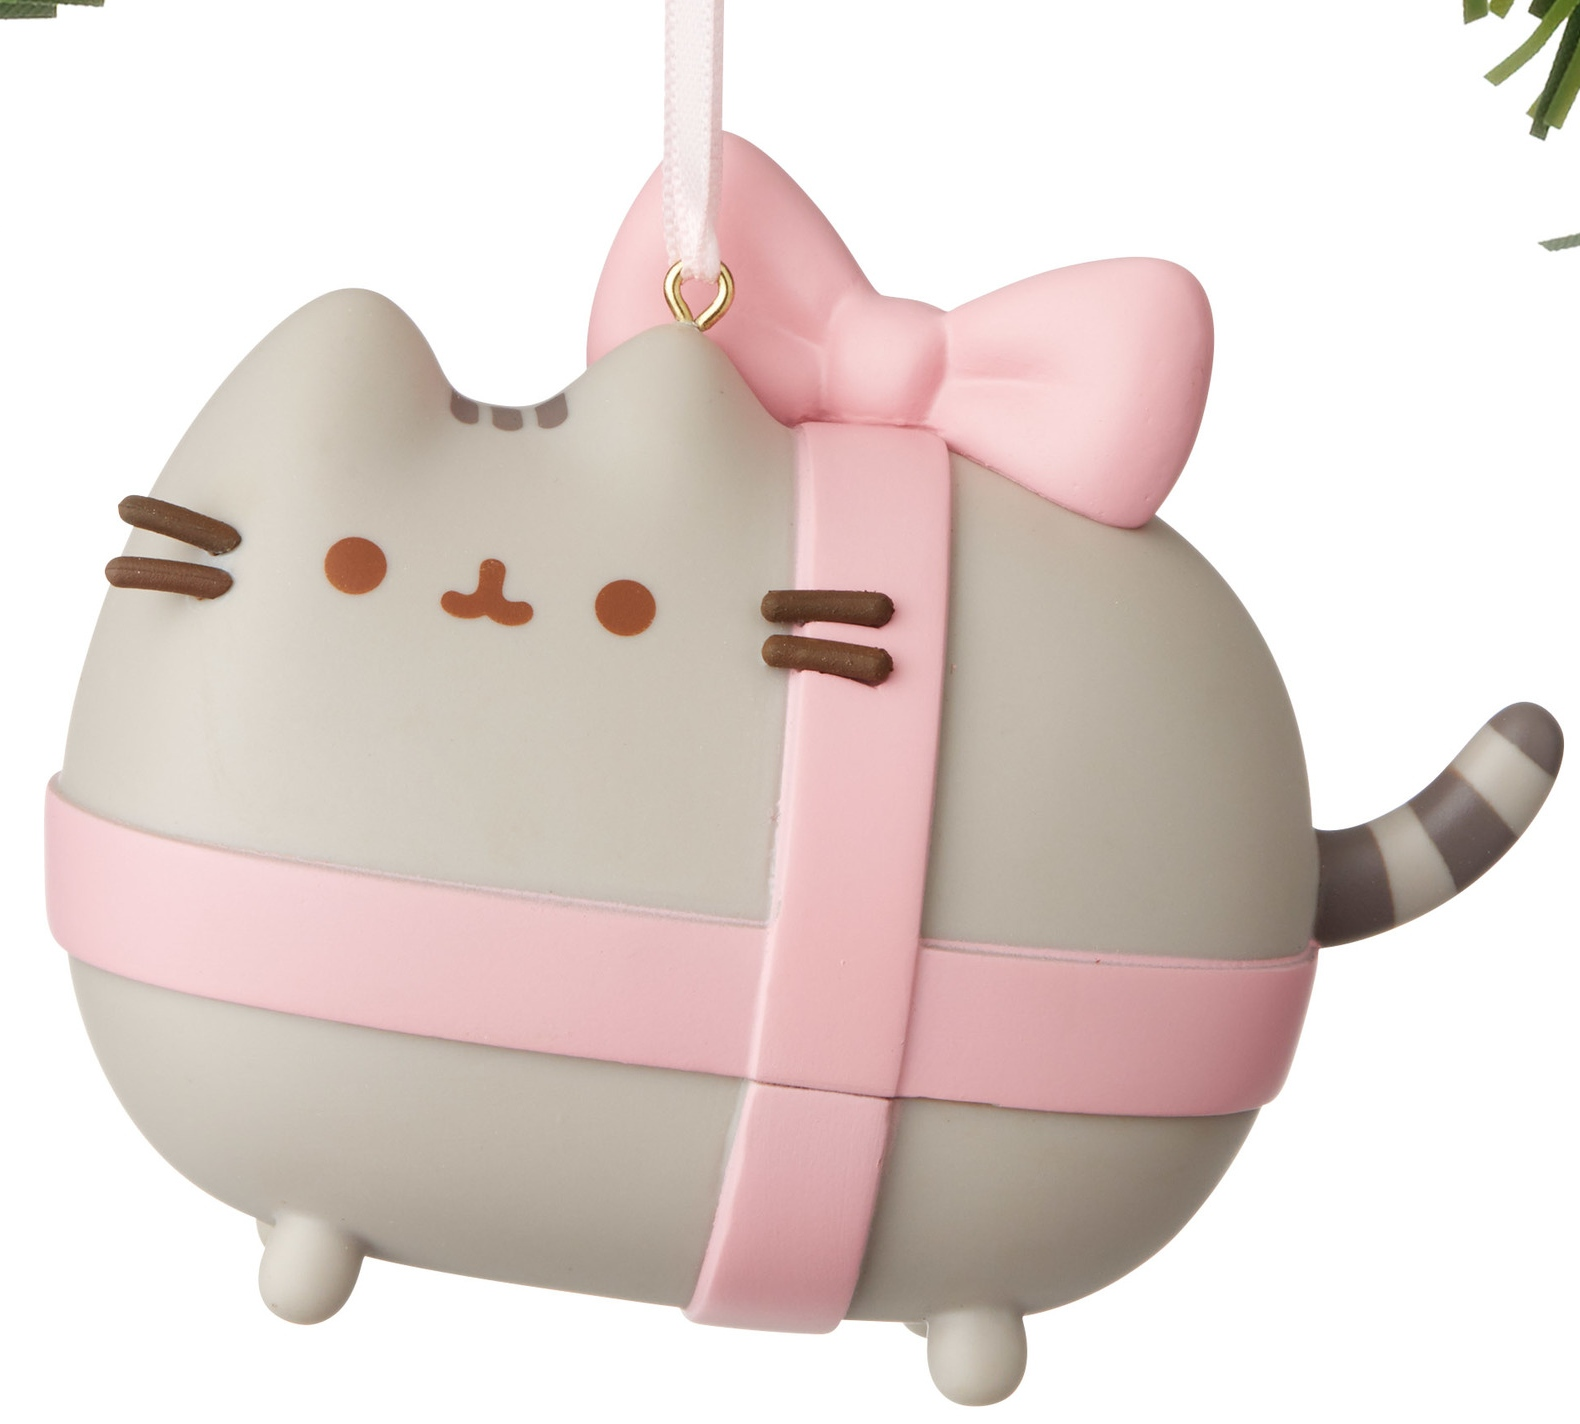 Special Sale 6011141 Pusheen by Dept 56 6011141 Gift Wrapped Cat Ornament